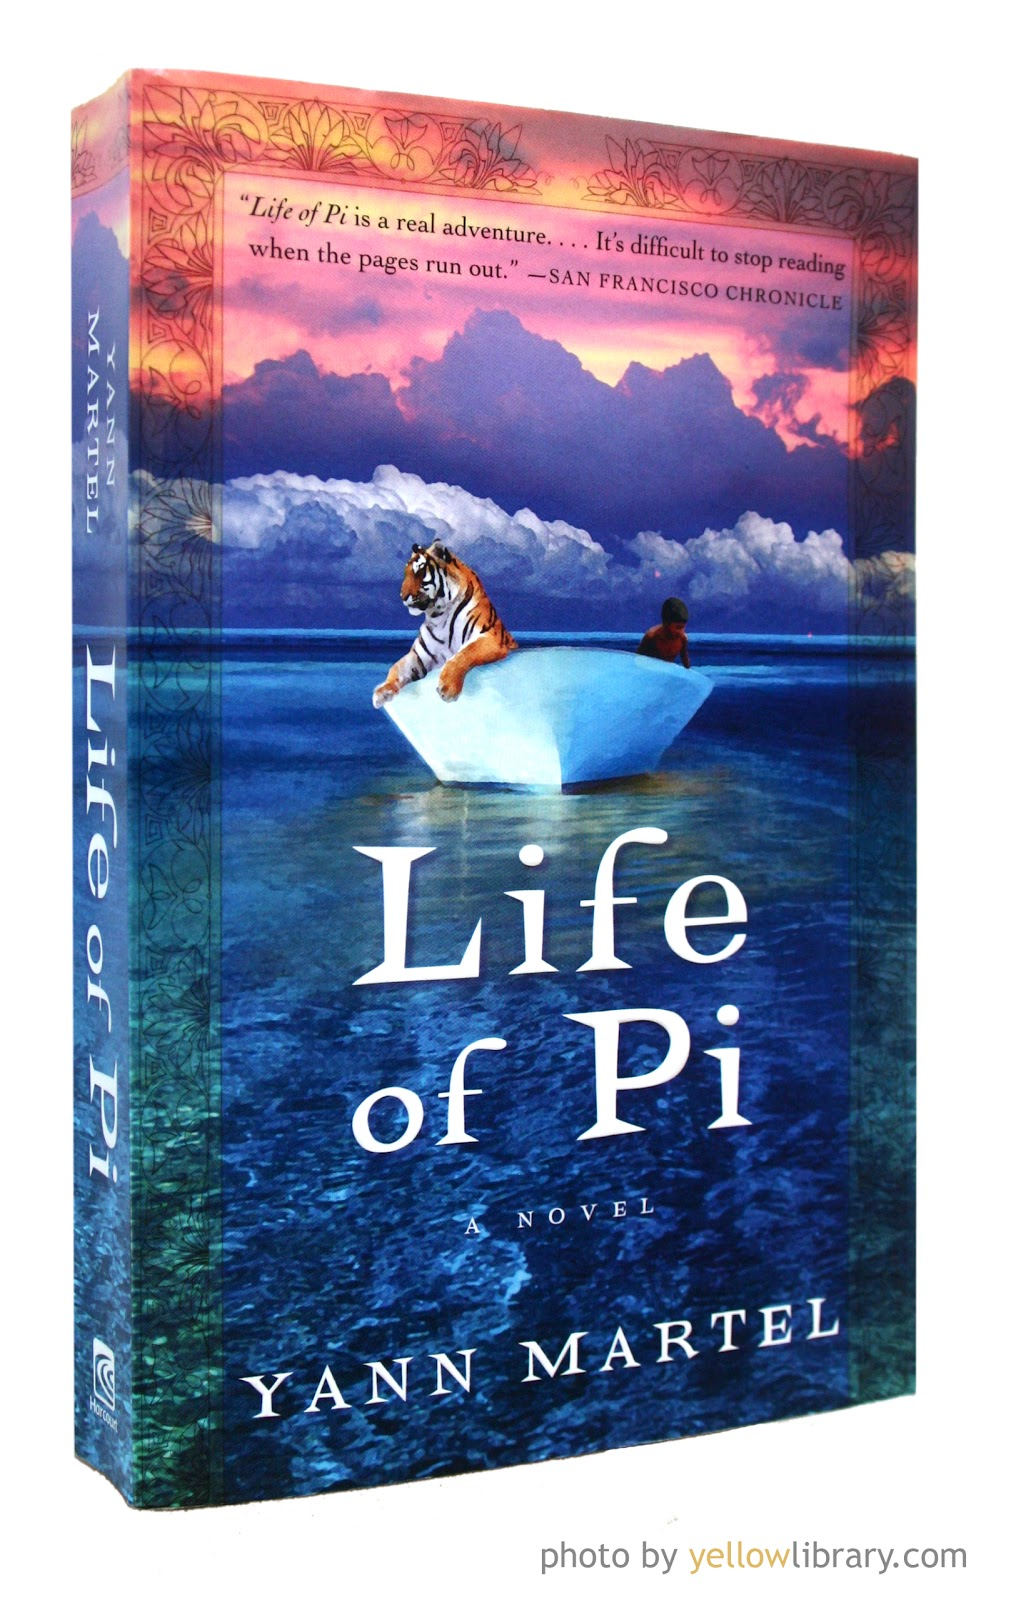 a review of the life of pi a novel by yann martel Life of pi ebook: yann martel  novel and winner of the  outrageous scenario with plausible life-- the new york times book review a story to make you.